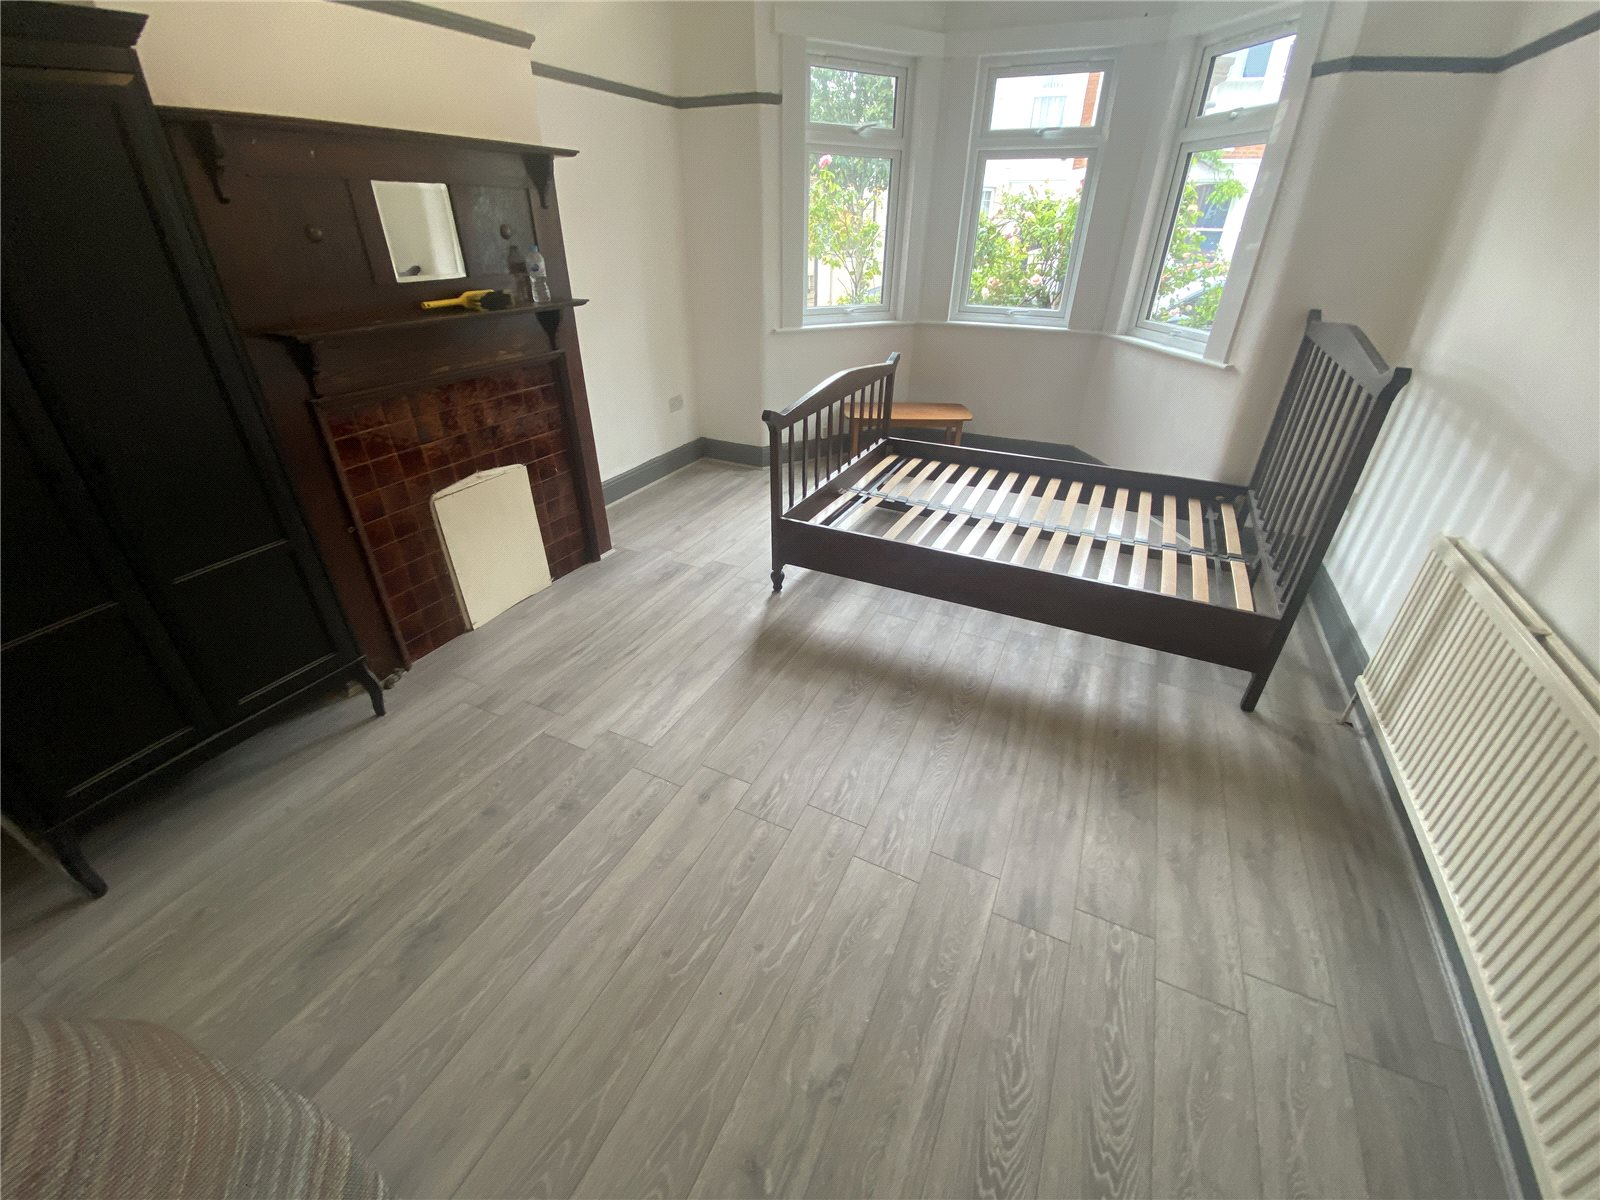 5 Bed 2 Bath House to rent - Haringey, N4